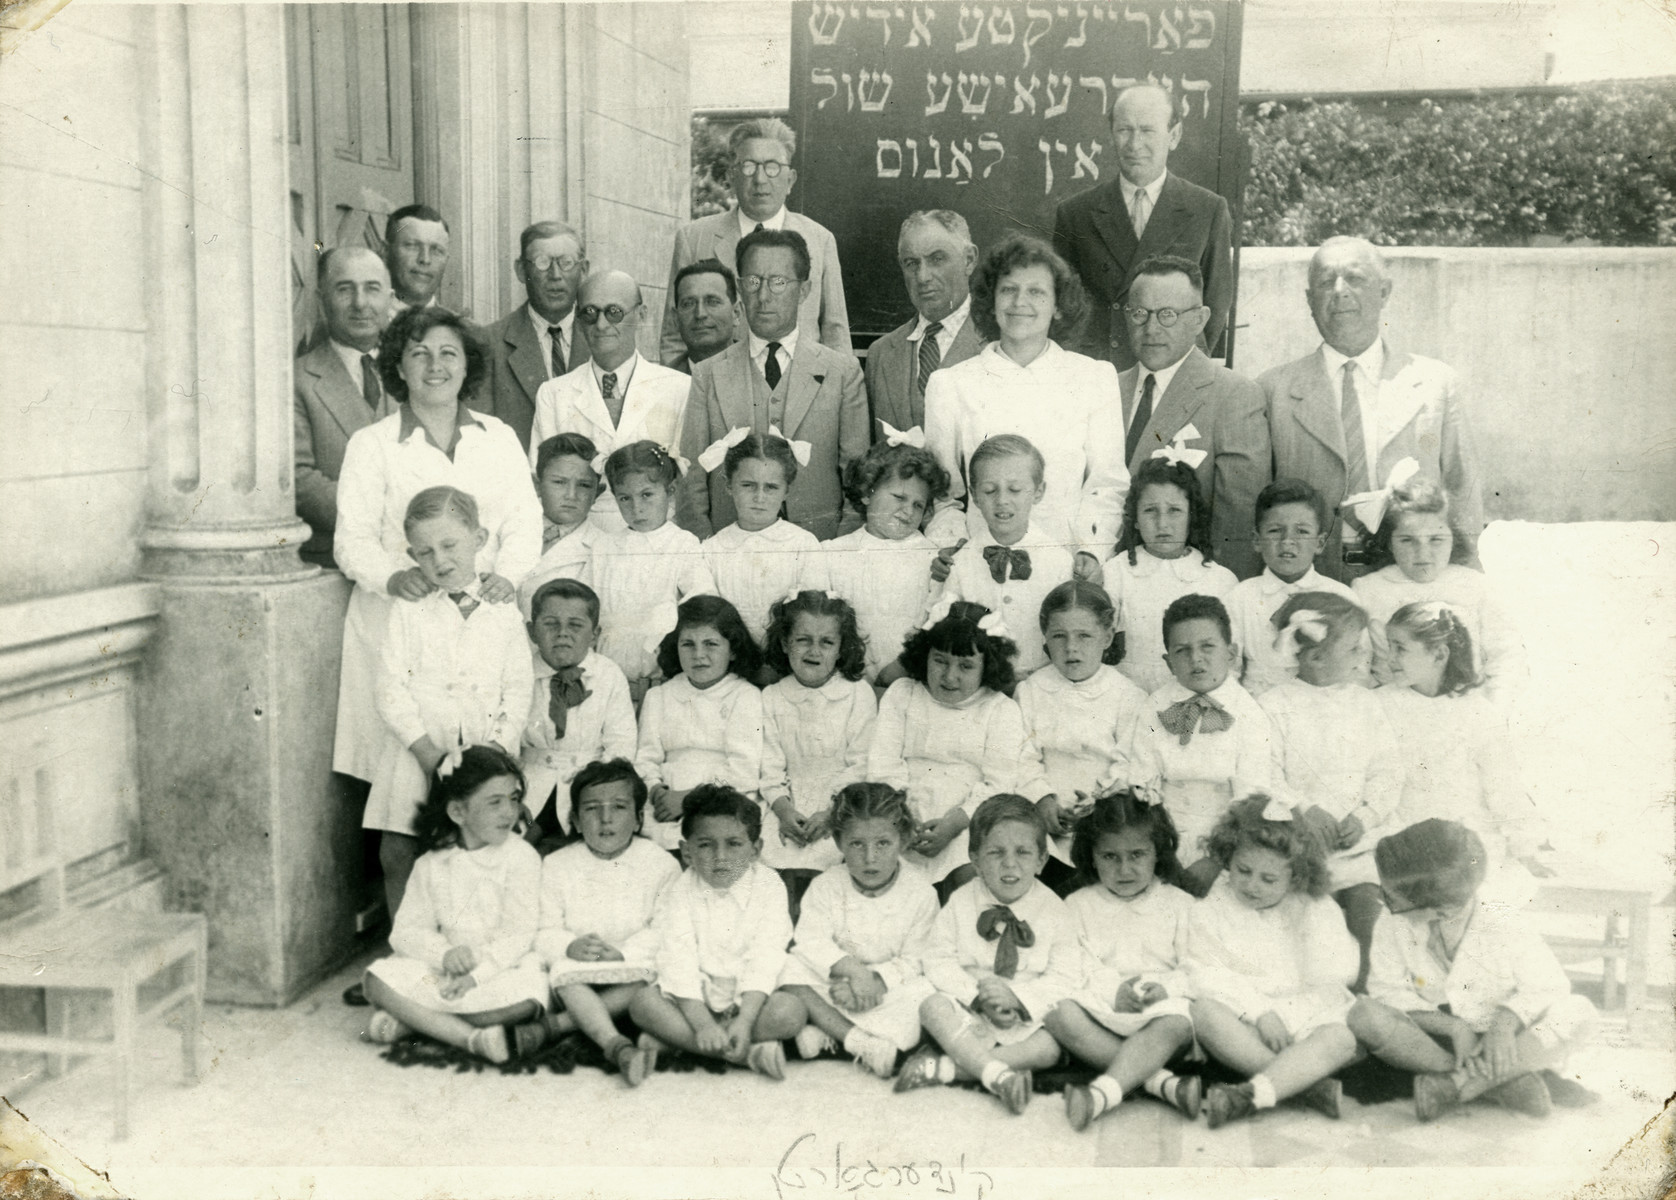 A group photo of children and teachers of the Jewish Yiddish school in Lanus, Argentina.   Batsheva Frankfowicz Finci, the daughter of Feivel and Ethel Frankfowicz, is pictured in the second row, forth from the left.